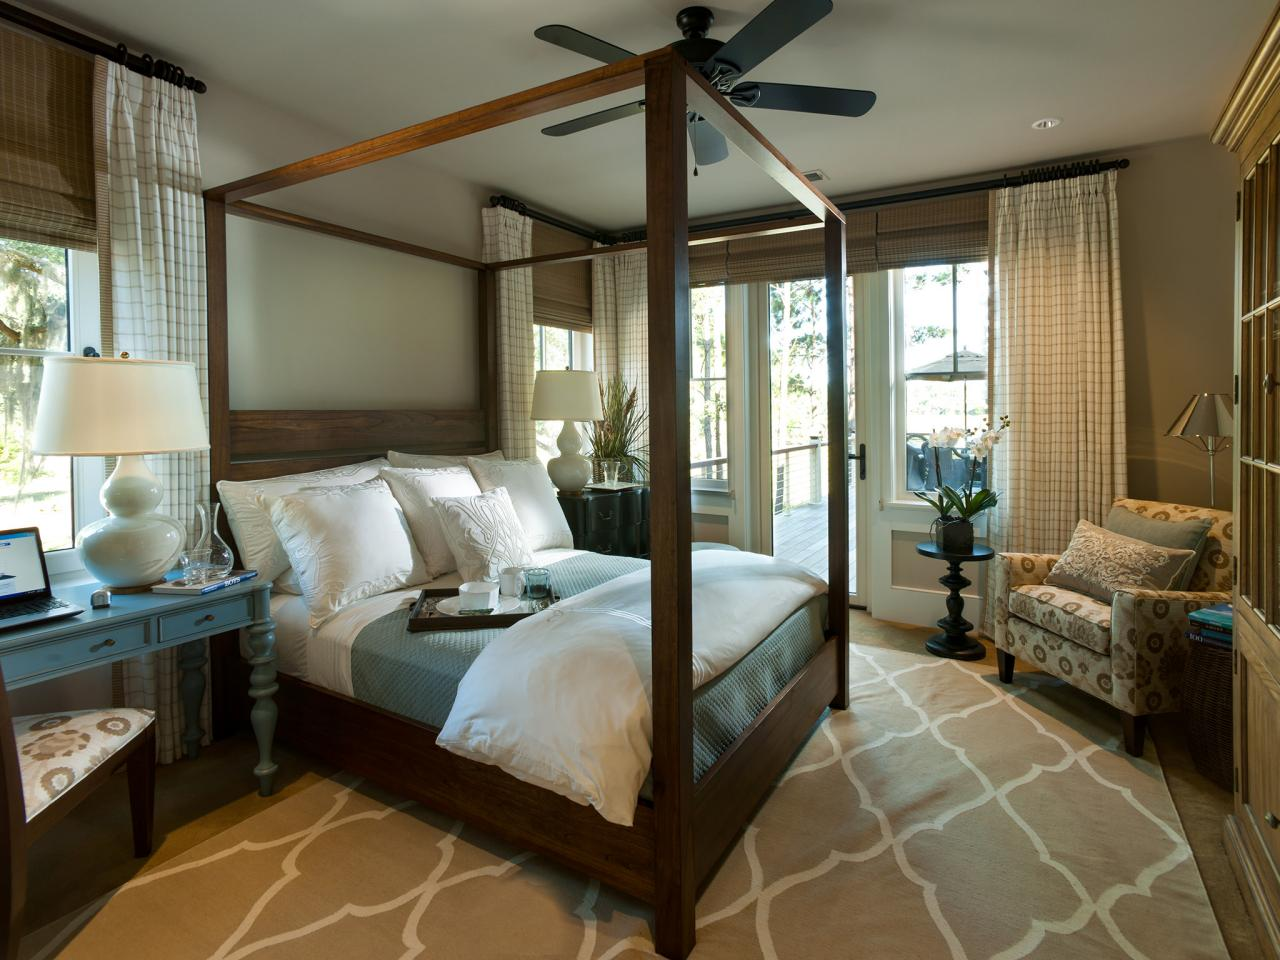 Master bedroom from hgtv dream home 2013 pictures and for Master bedrooms